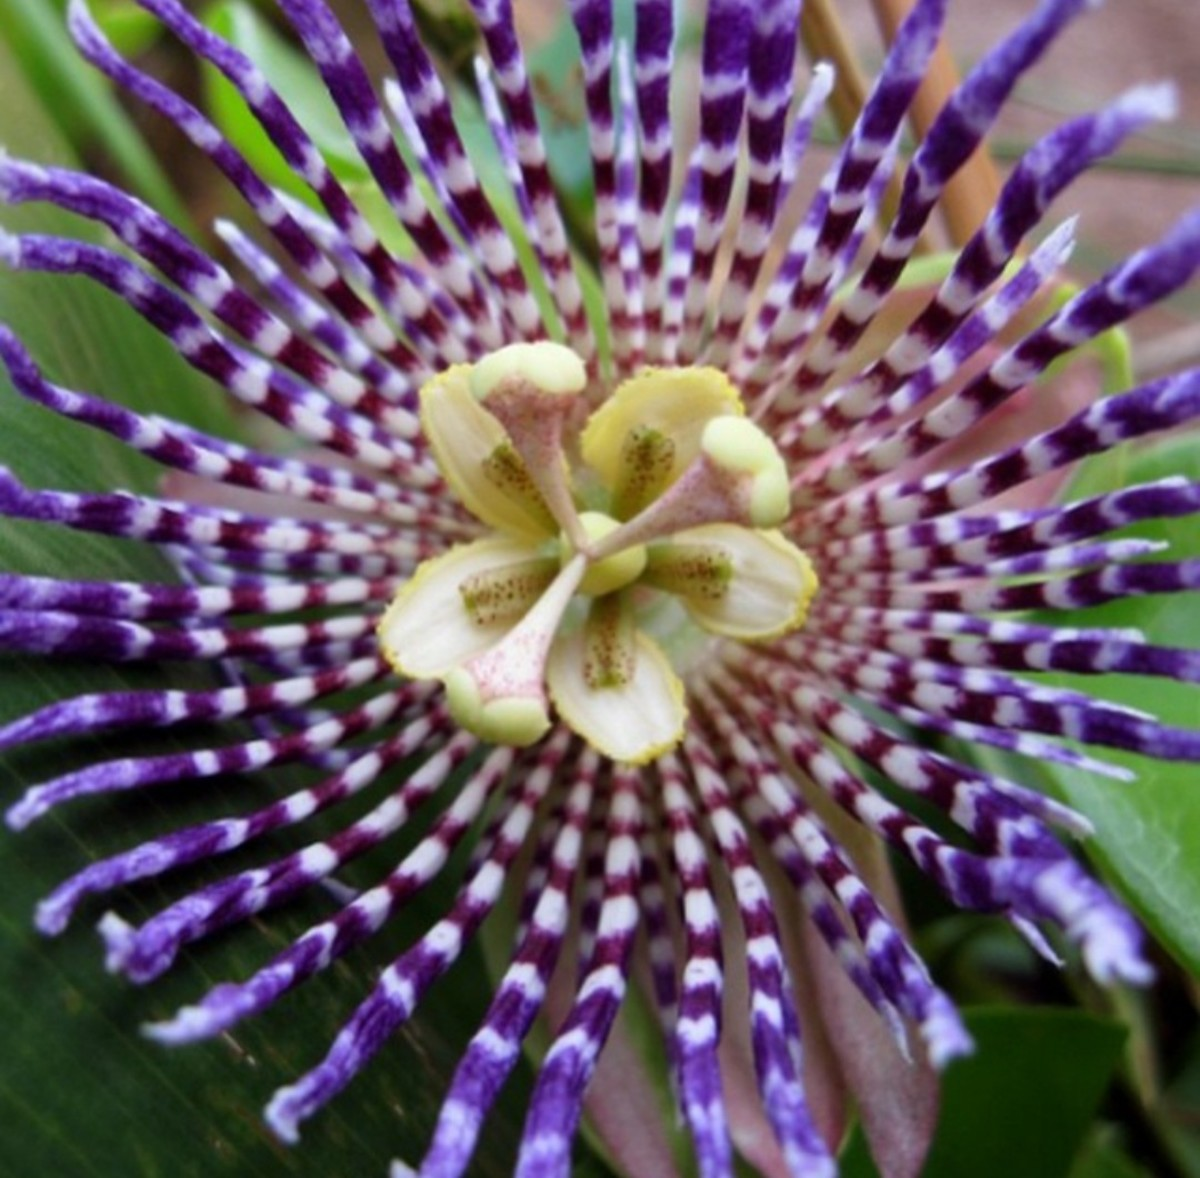 The blooming passionflower